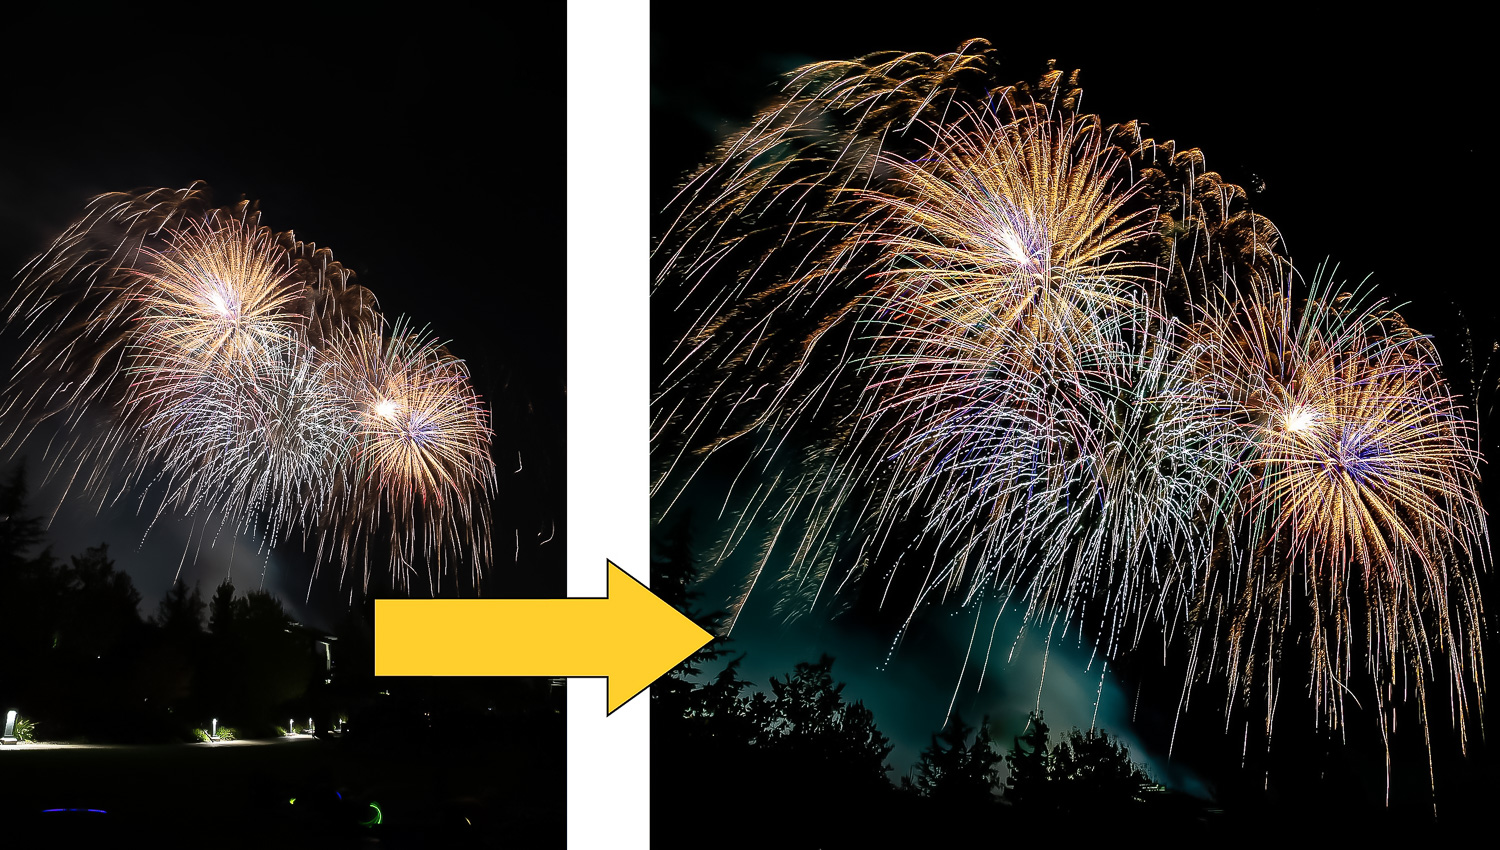 How to Edit Fireworks Photos Creatively